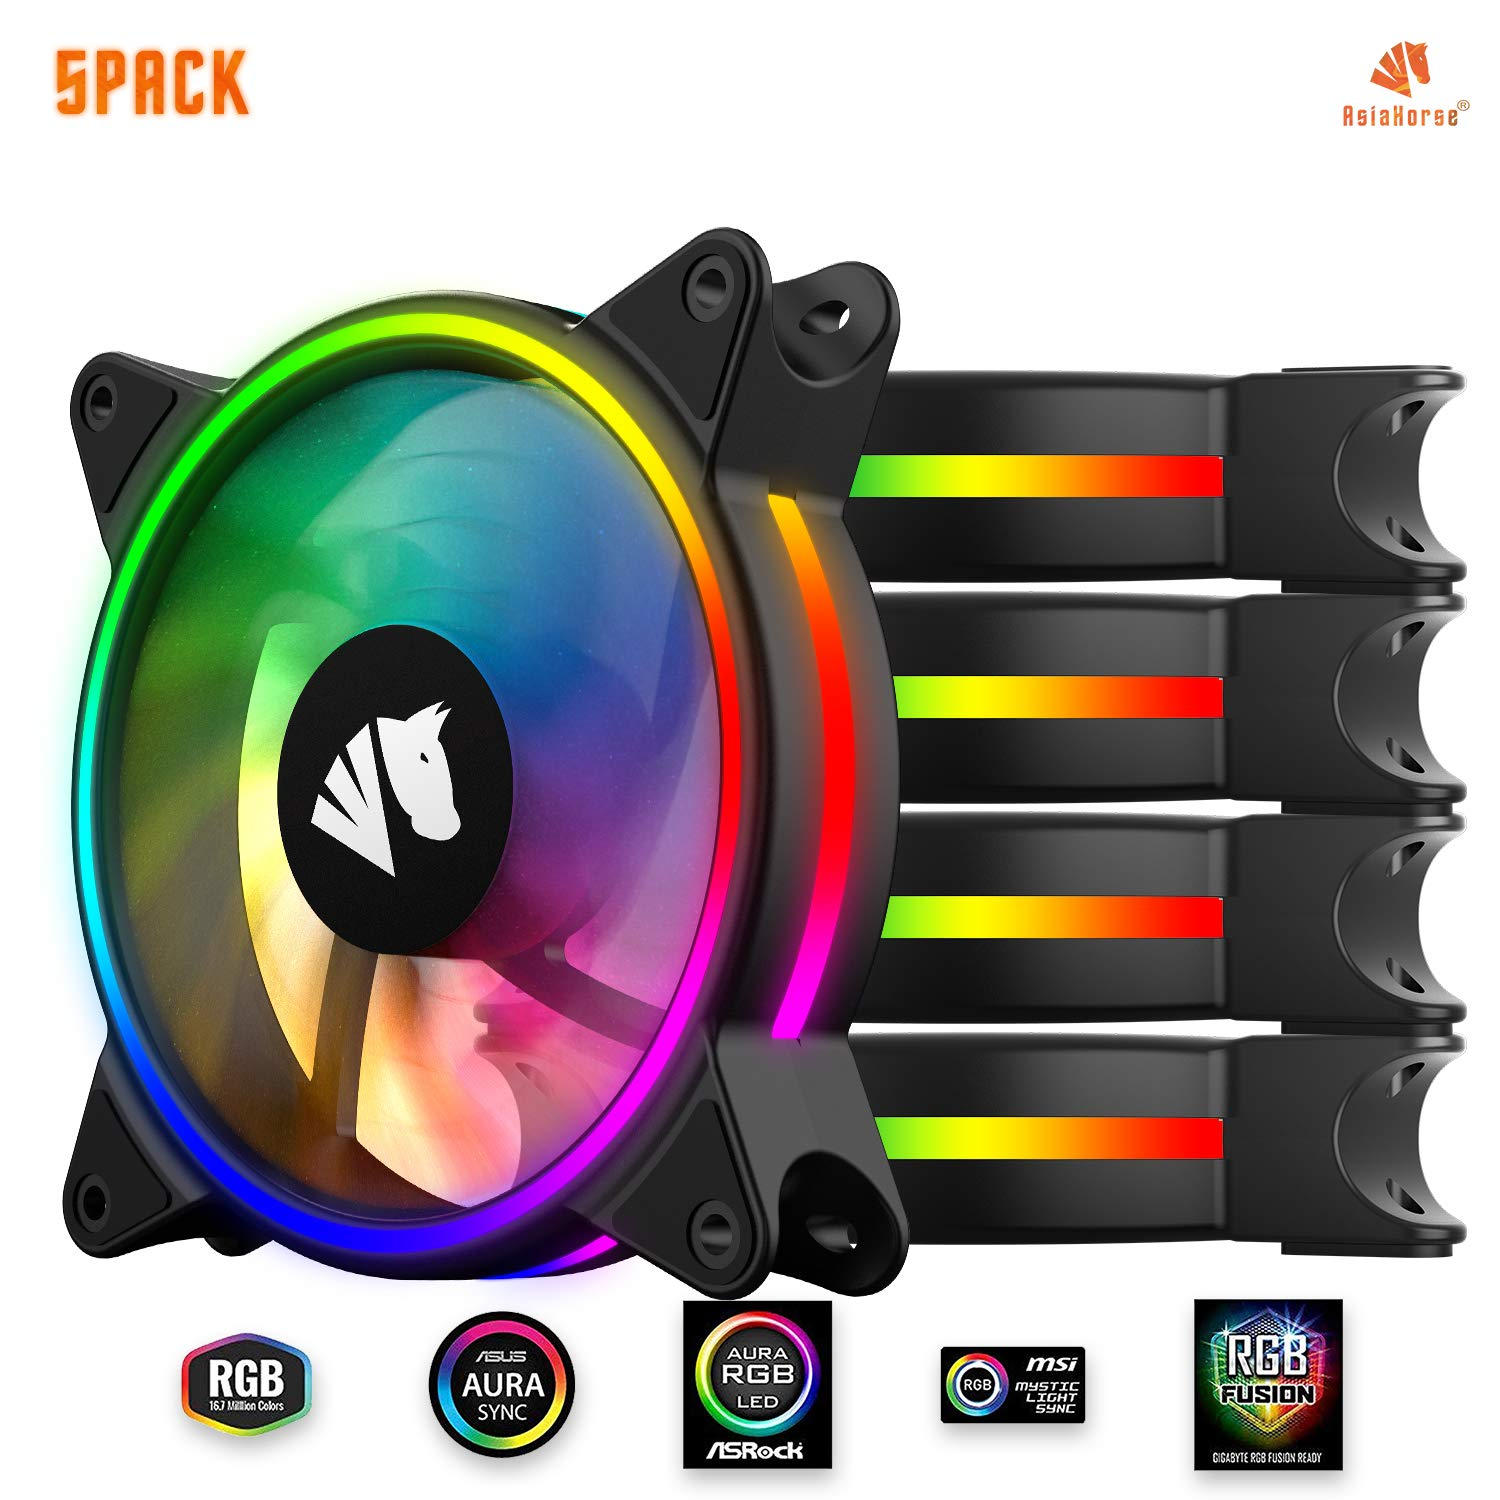 Asiahorse MS-9002 120mm ARGB Music case Fan(in and Outside Light efect) Adjustable Speed 800-1500 RPM Synchronizable RGB Lighting via motherboard-5PACK by AsiaHorse